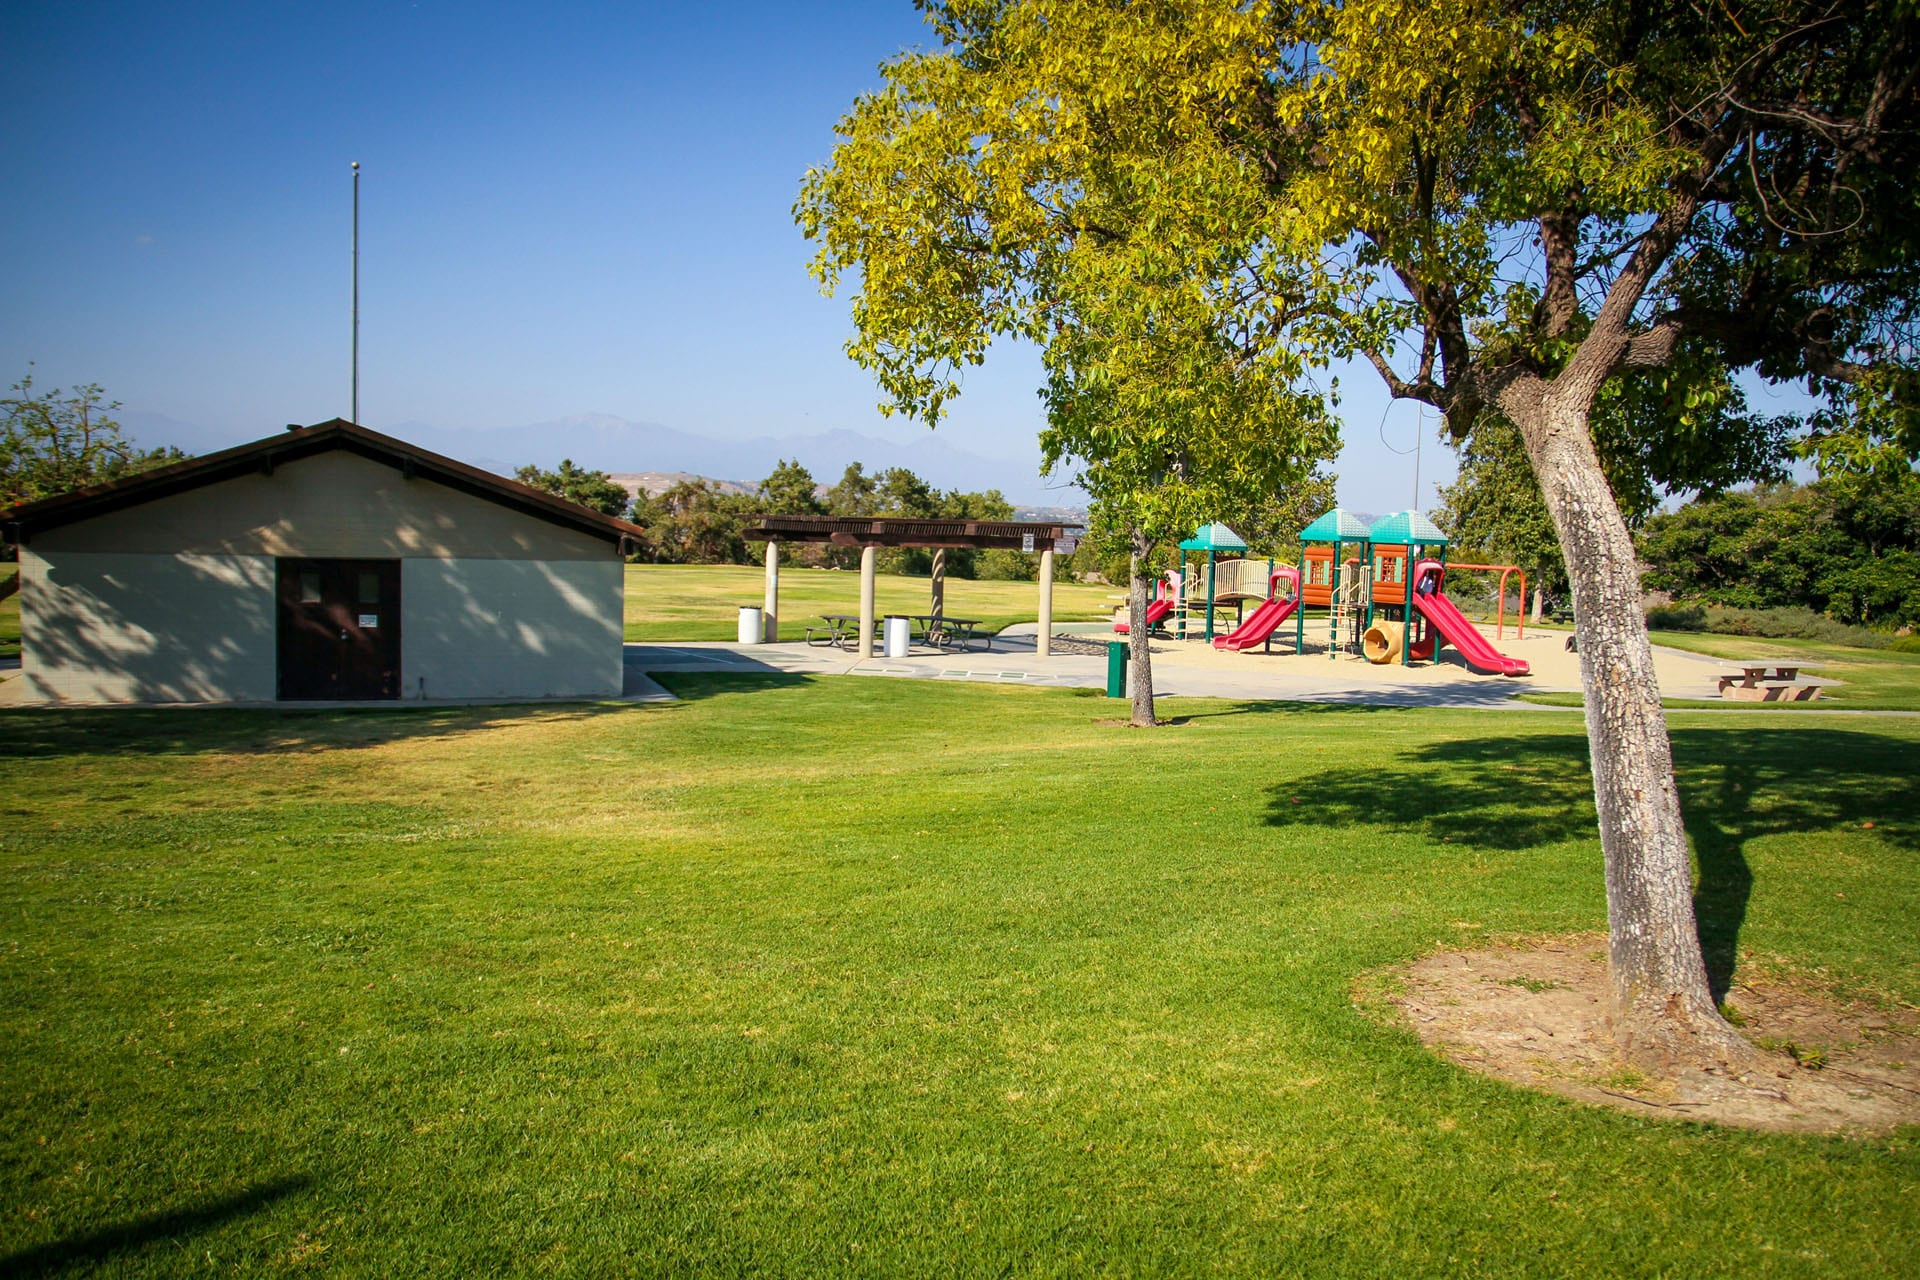 Green lawn and a playground at a distance